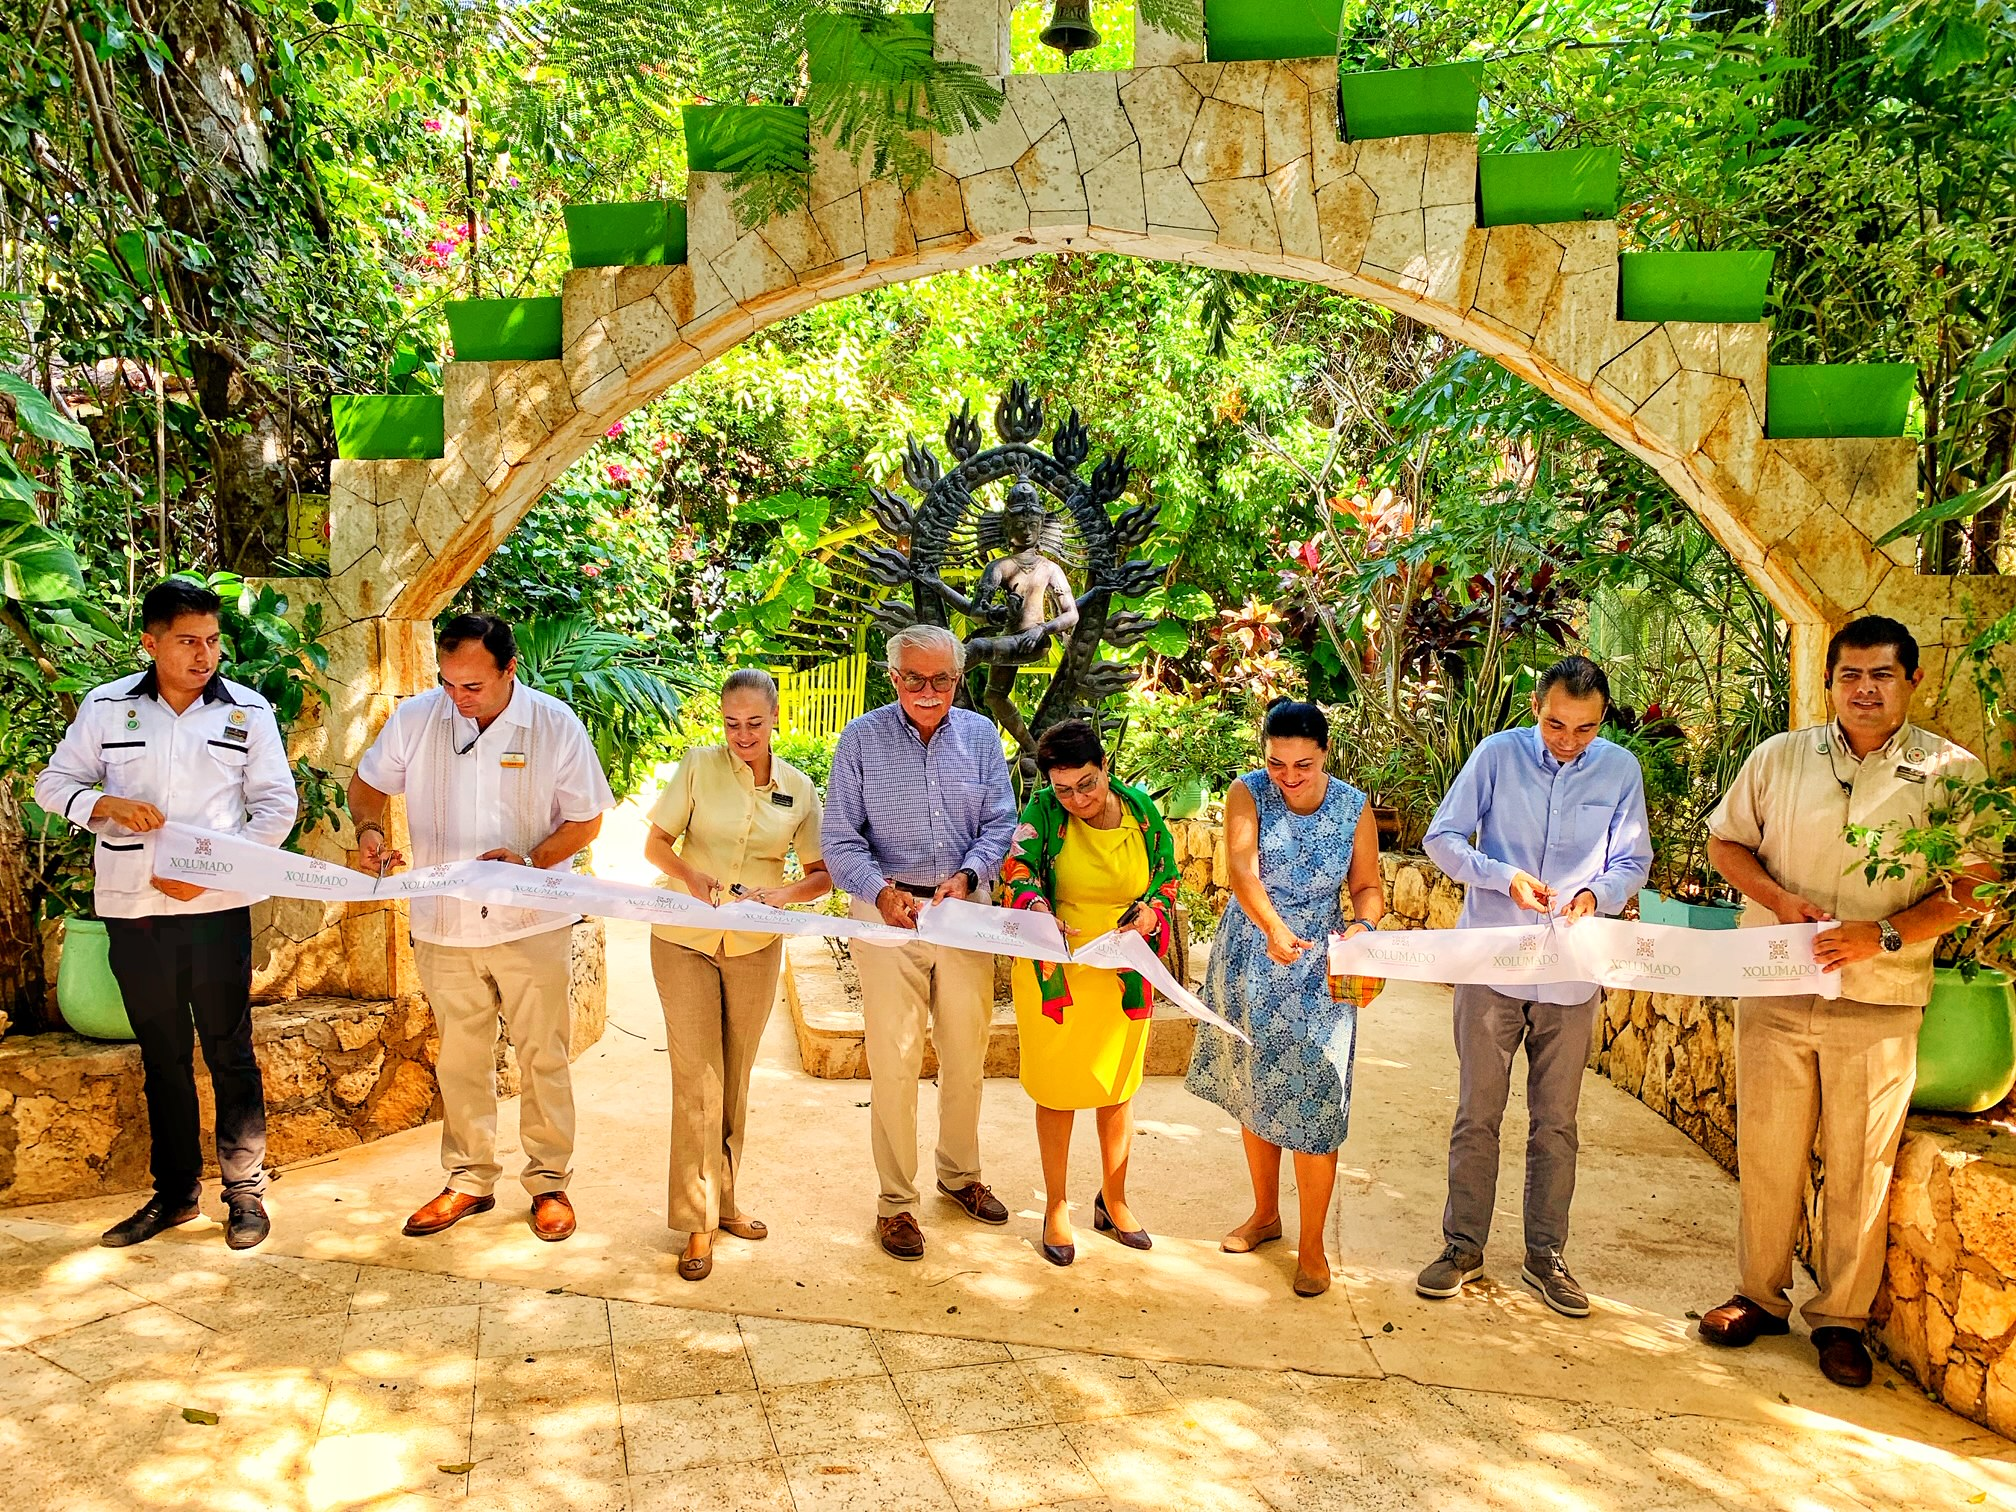 A First Look At Xolumado Inspiration Village - TravelPress